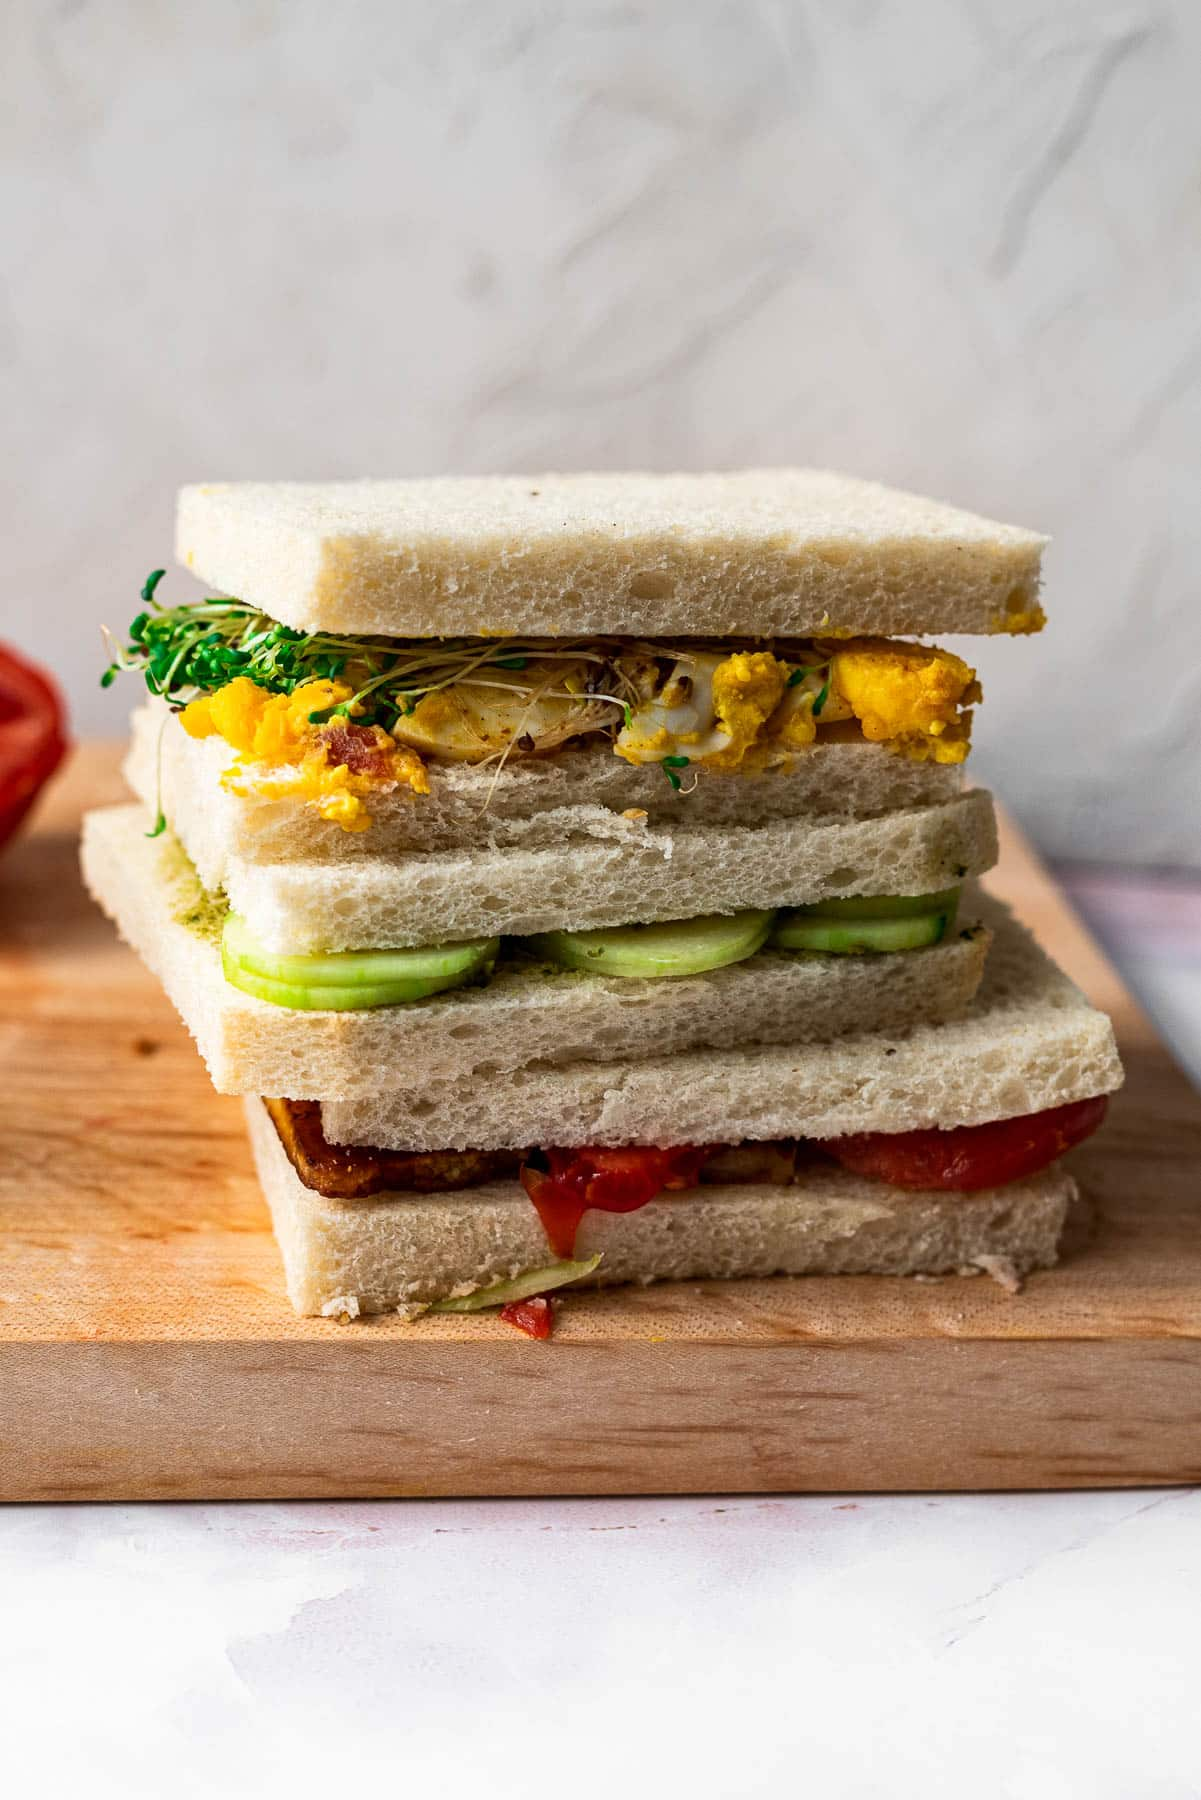 three tea sandwiches stacked on top of each other on a wooden board